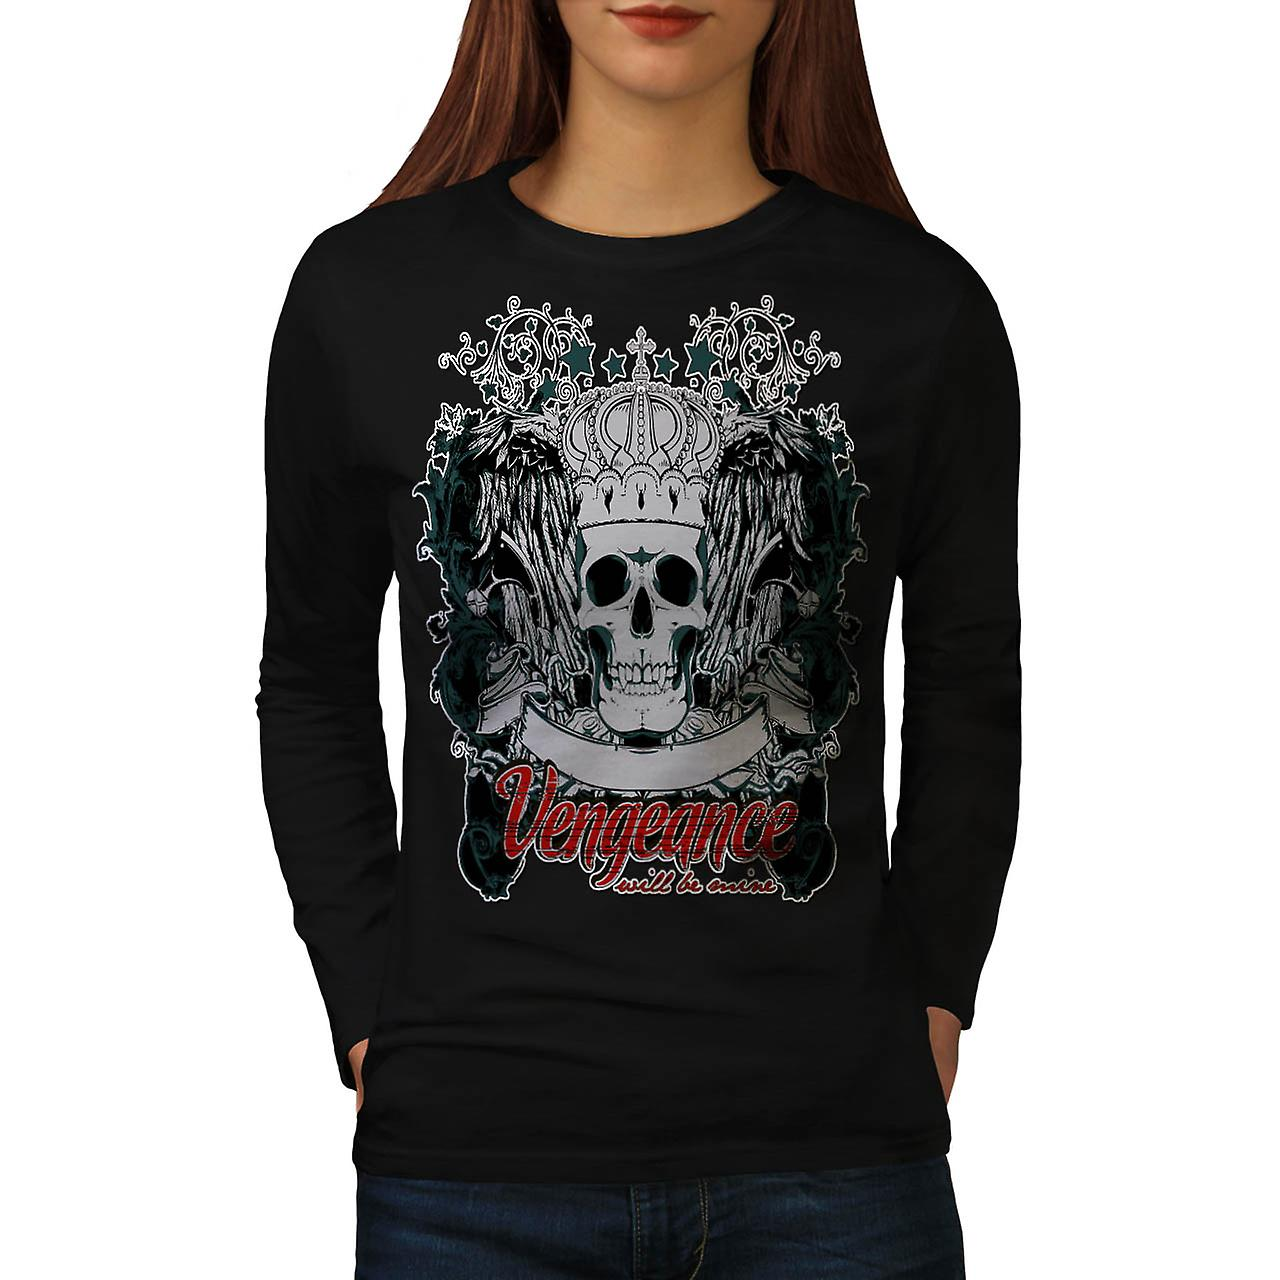 Vengeance Revenge Eye Thrones Women Black Long Sleeve T-shirt | Wellcoda